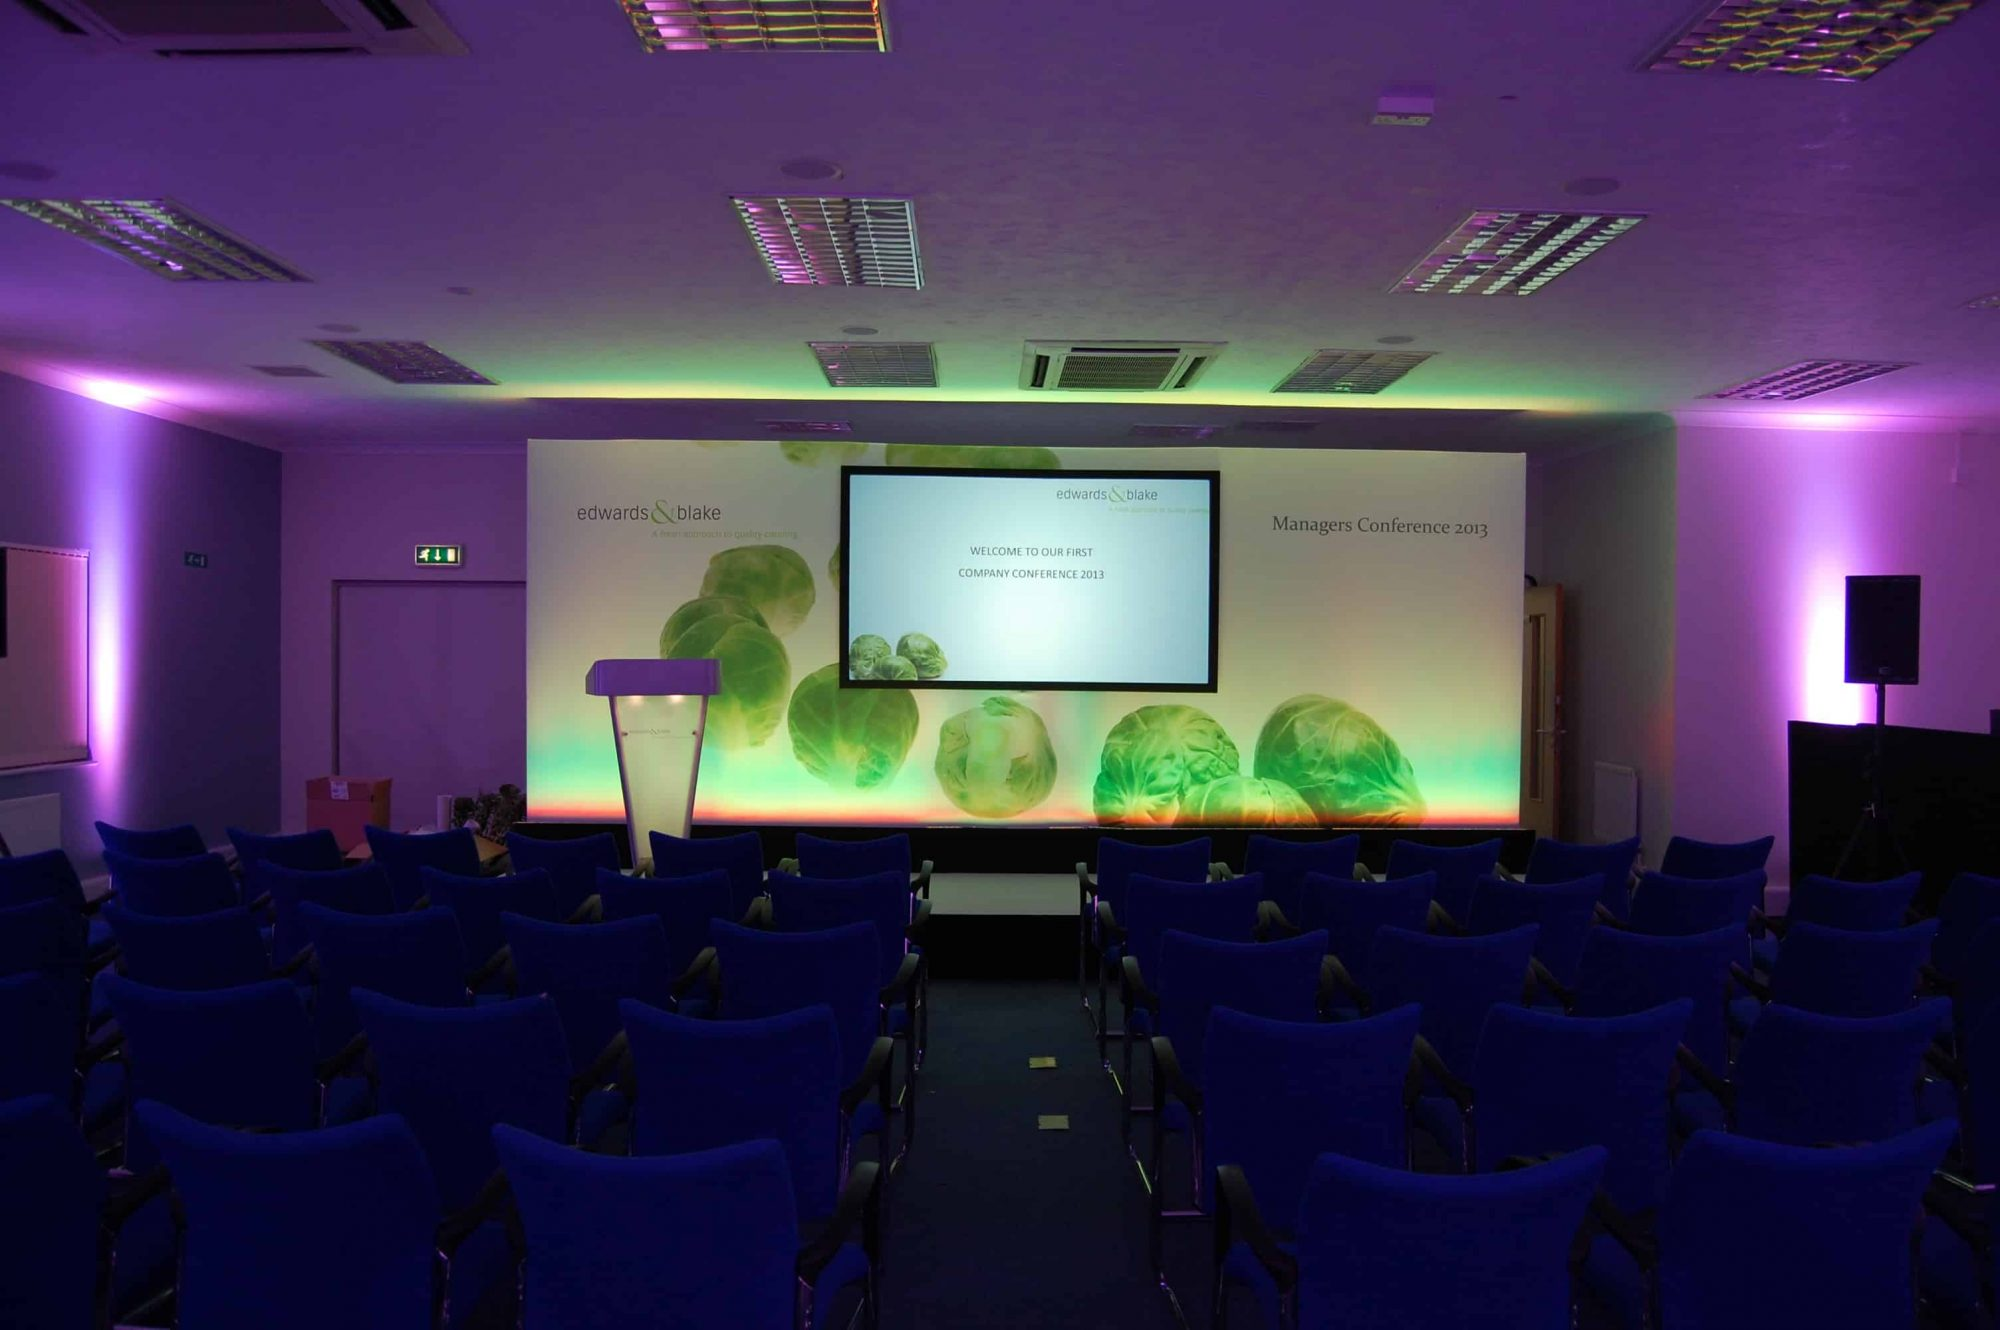 A Full Print Set with Rear Projection Uplighting and Lectern 1